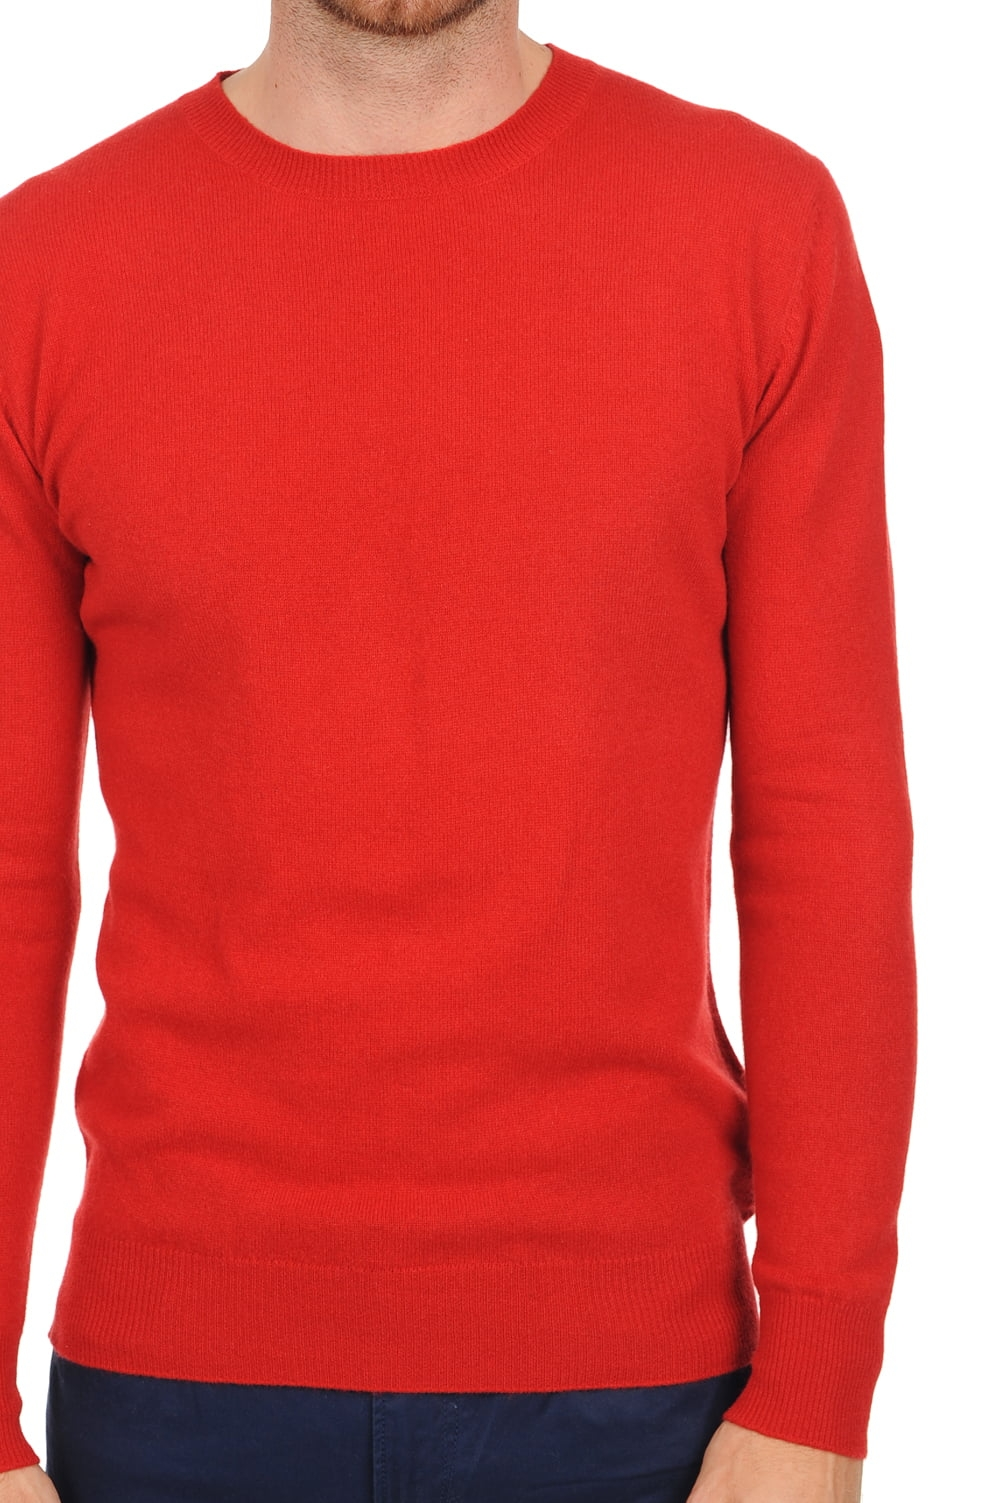 Cashmere men basic sweaters at low prices tao ultra red xl